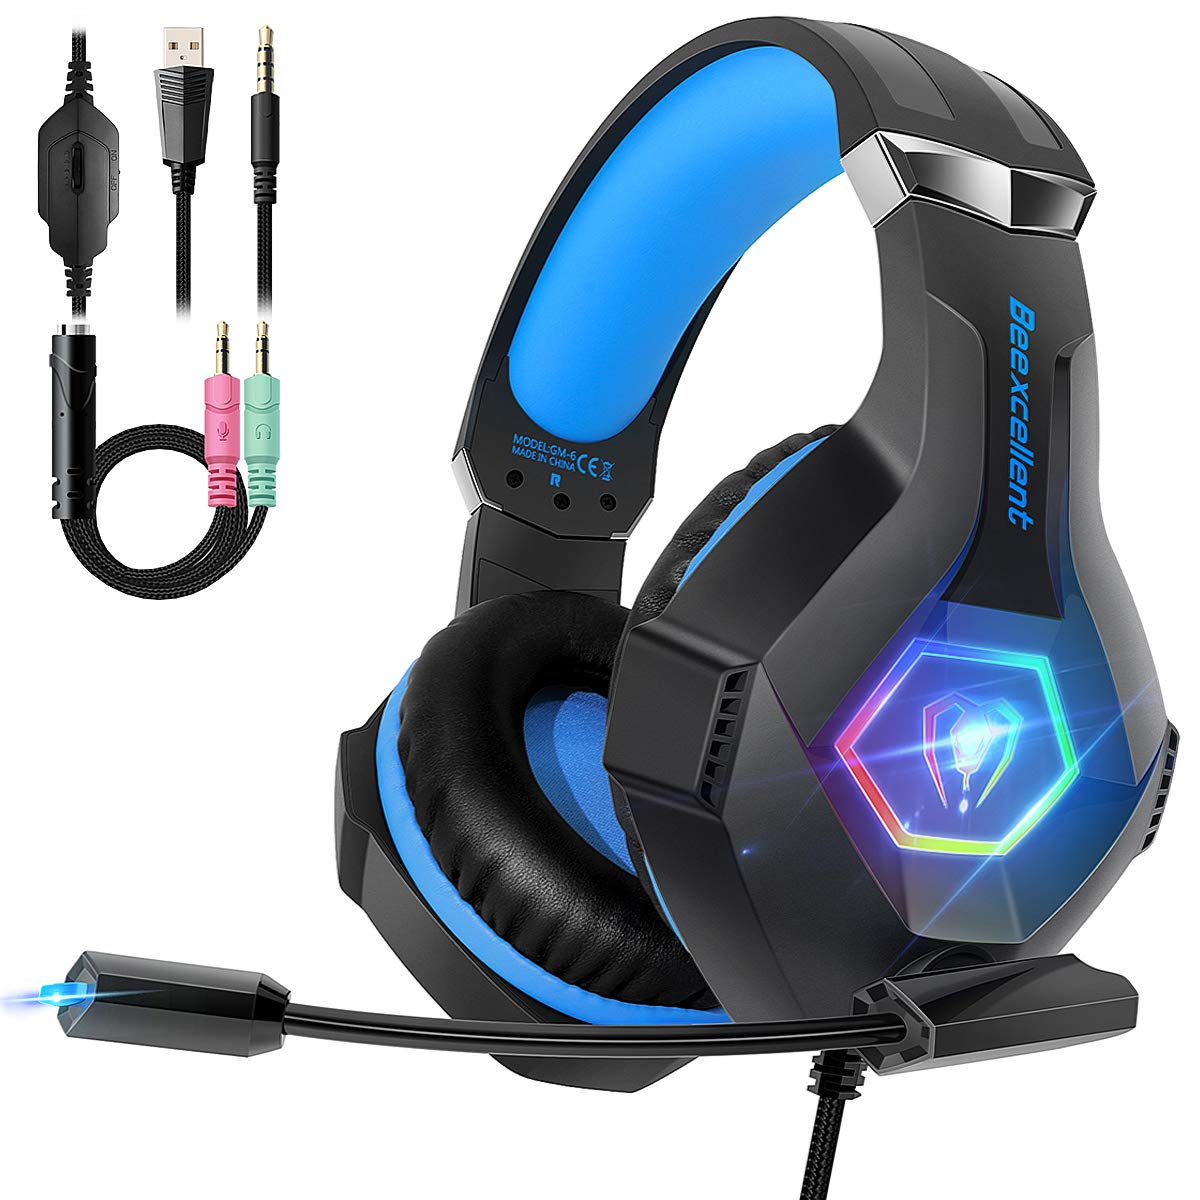 Gaming Headset for PS4, 2019 Latest Ultra Light Professional Gaming Headset, Stereo Surround with Noise Cancelling Soft Microphone 3.5mm Jack for PS4 Xbox One PC Nintendo Laptop iPad by Beexcellent